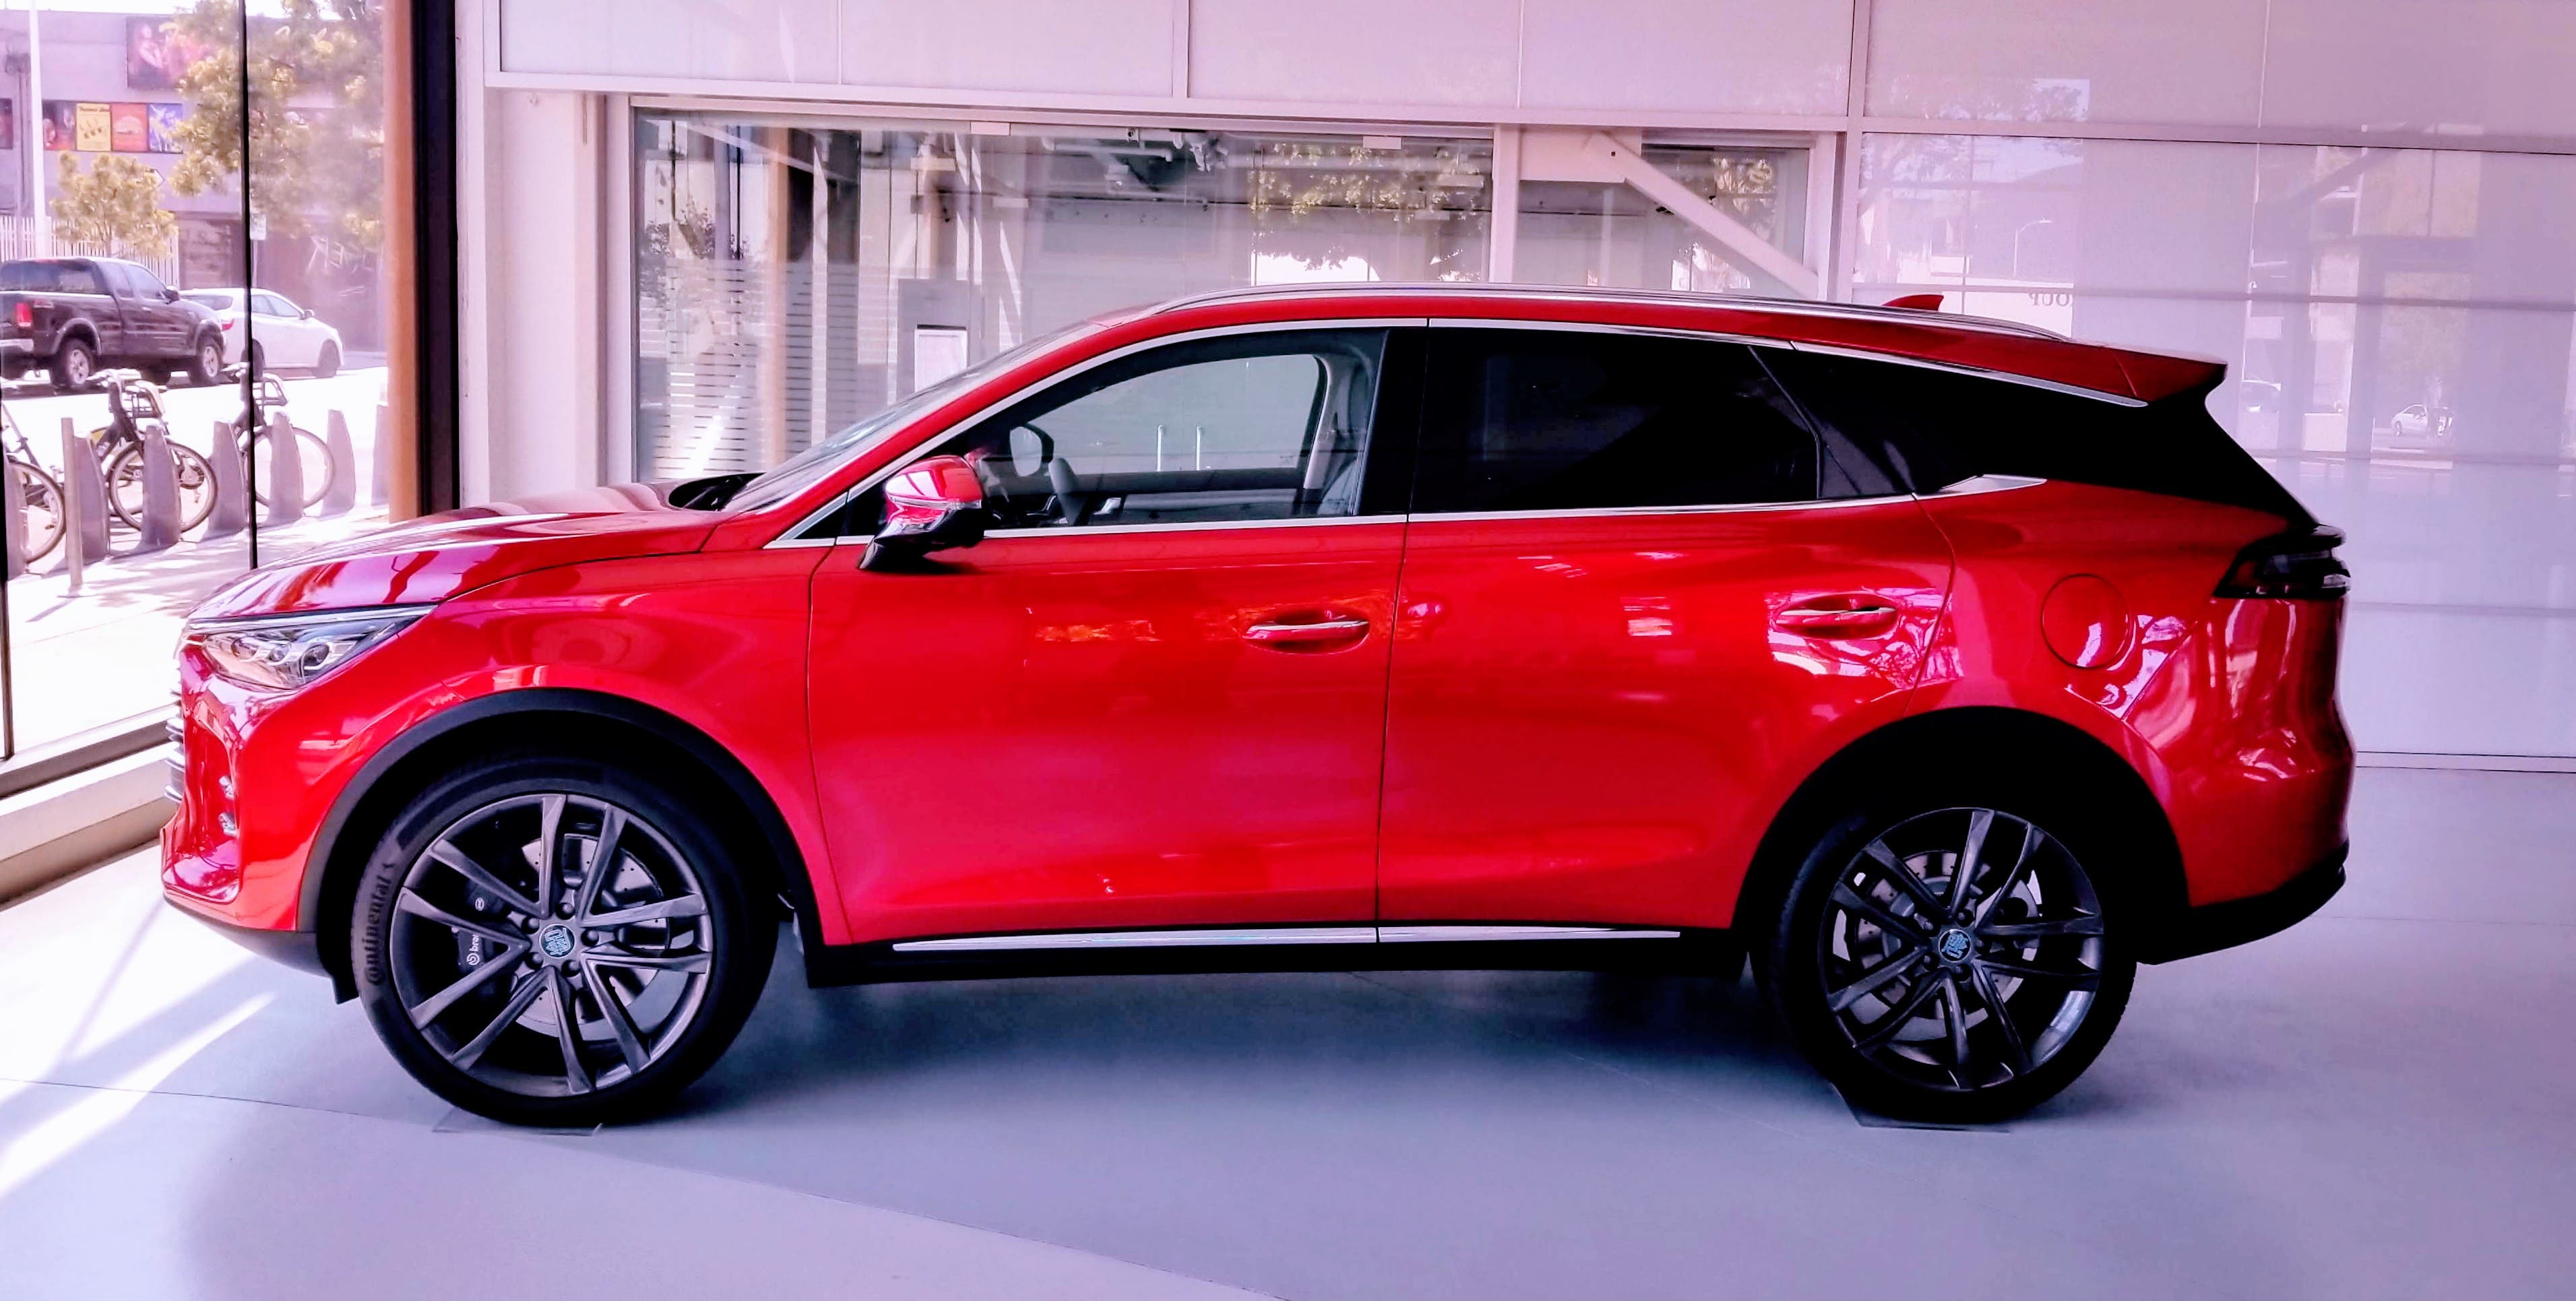 China Mandates That A Carmaker Has Bought Or Earned Nev Credits Equal To 10 Of Its Fossil Fuel Vehicle Ffv S In 2019 And 12 2020